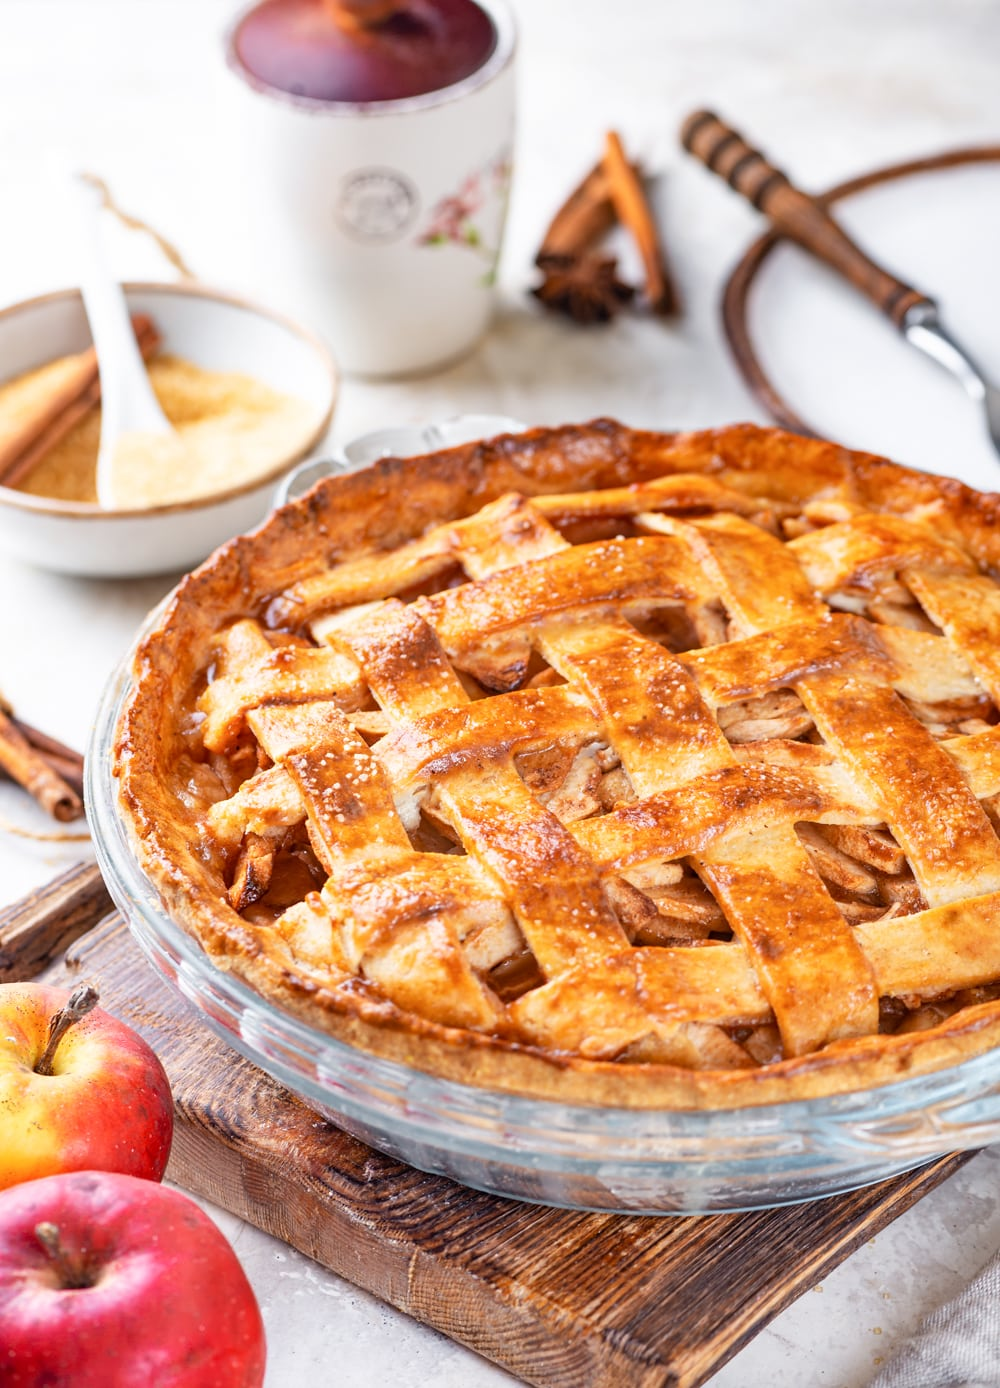 A vegan apple pie in a glass pie dish. The pie dish is on a wooden cutting board which is on a grey counter. There is a bowl of sliced apples and a cup of coffee behind the pie and two whole apples in front of the pie to the left of the cutting board.